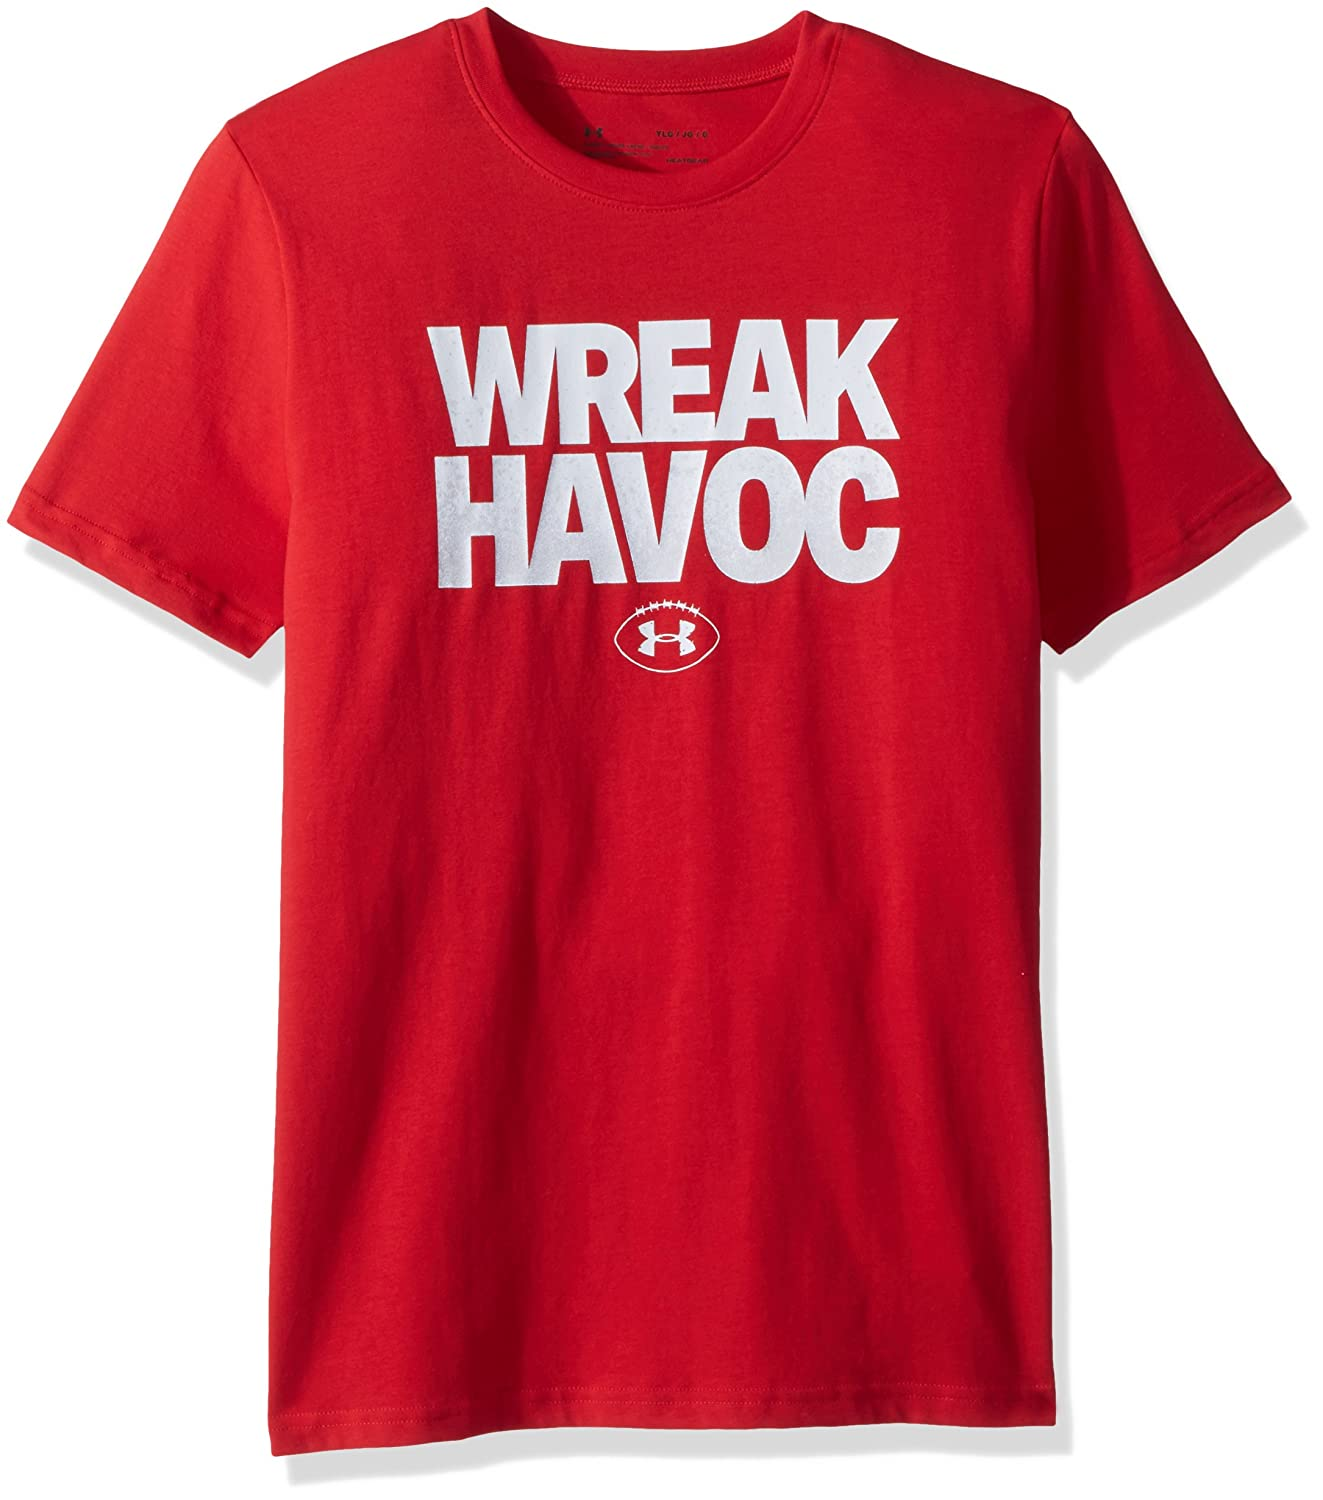 Under Armour ボーイズ Wreak Havoc Tシャツ B071P2M28S Red (600)/White Youth Medium